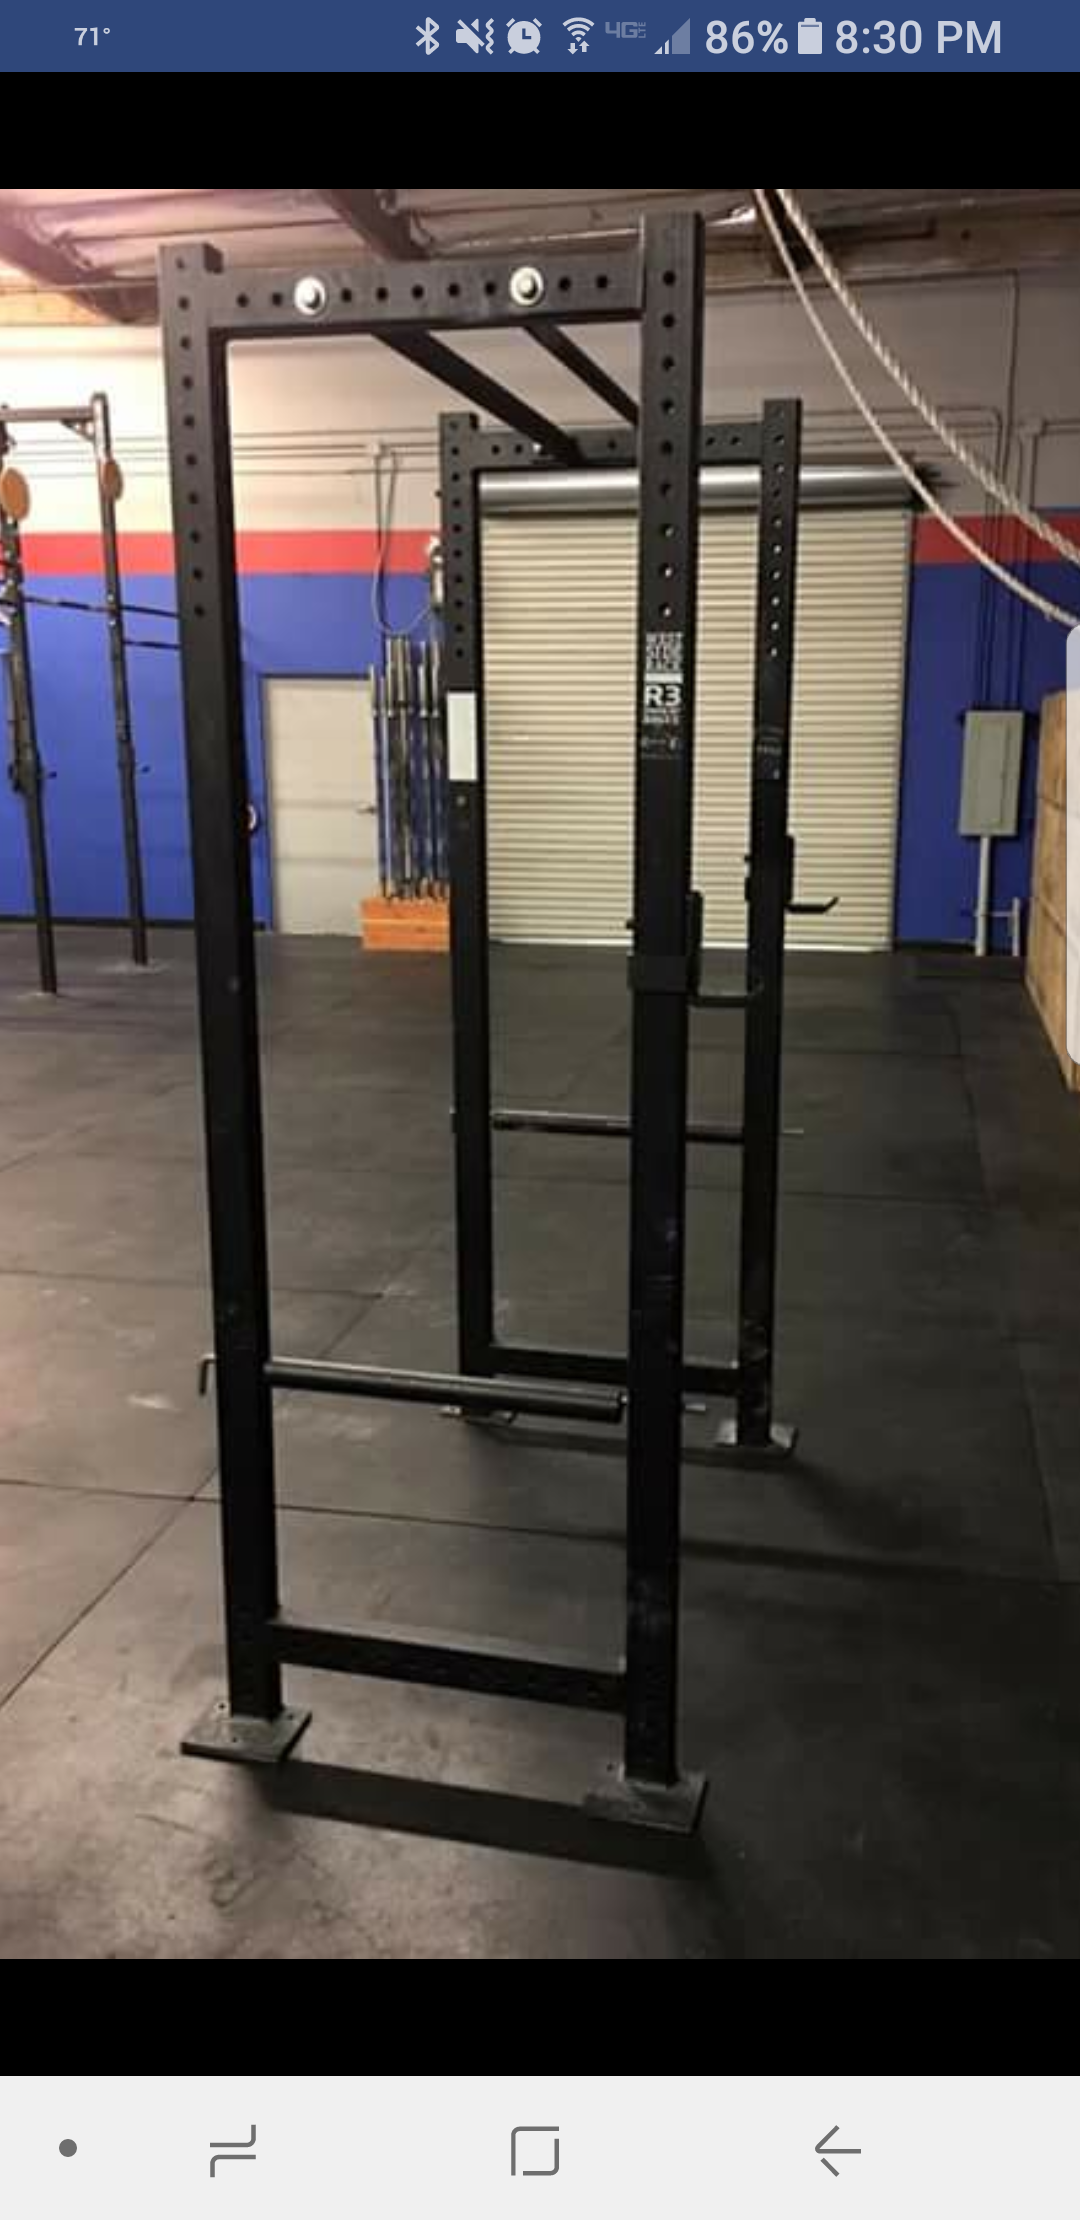 my old crossfit gym is selling this for